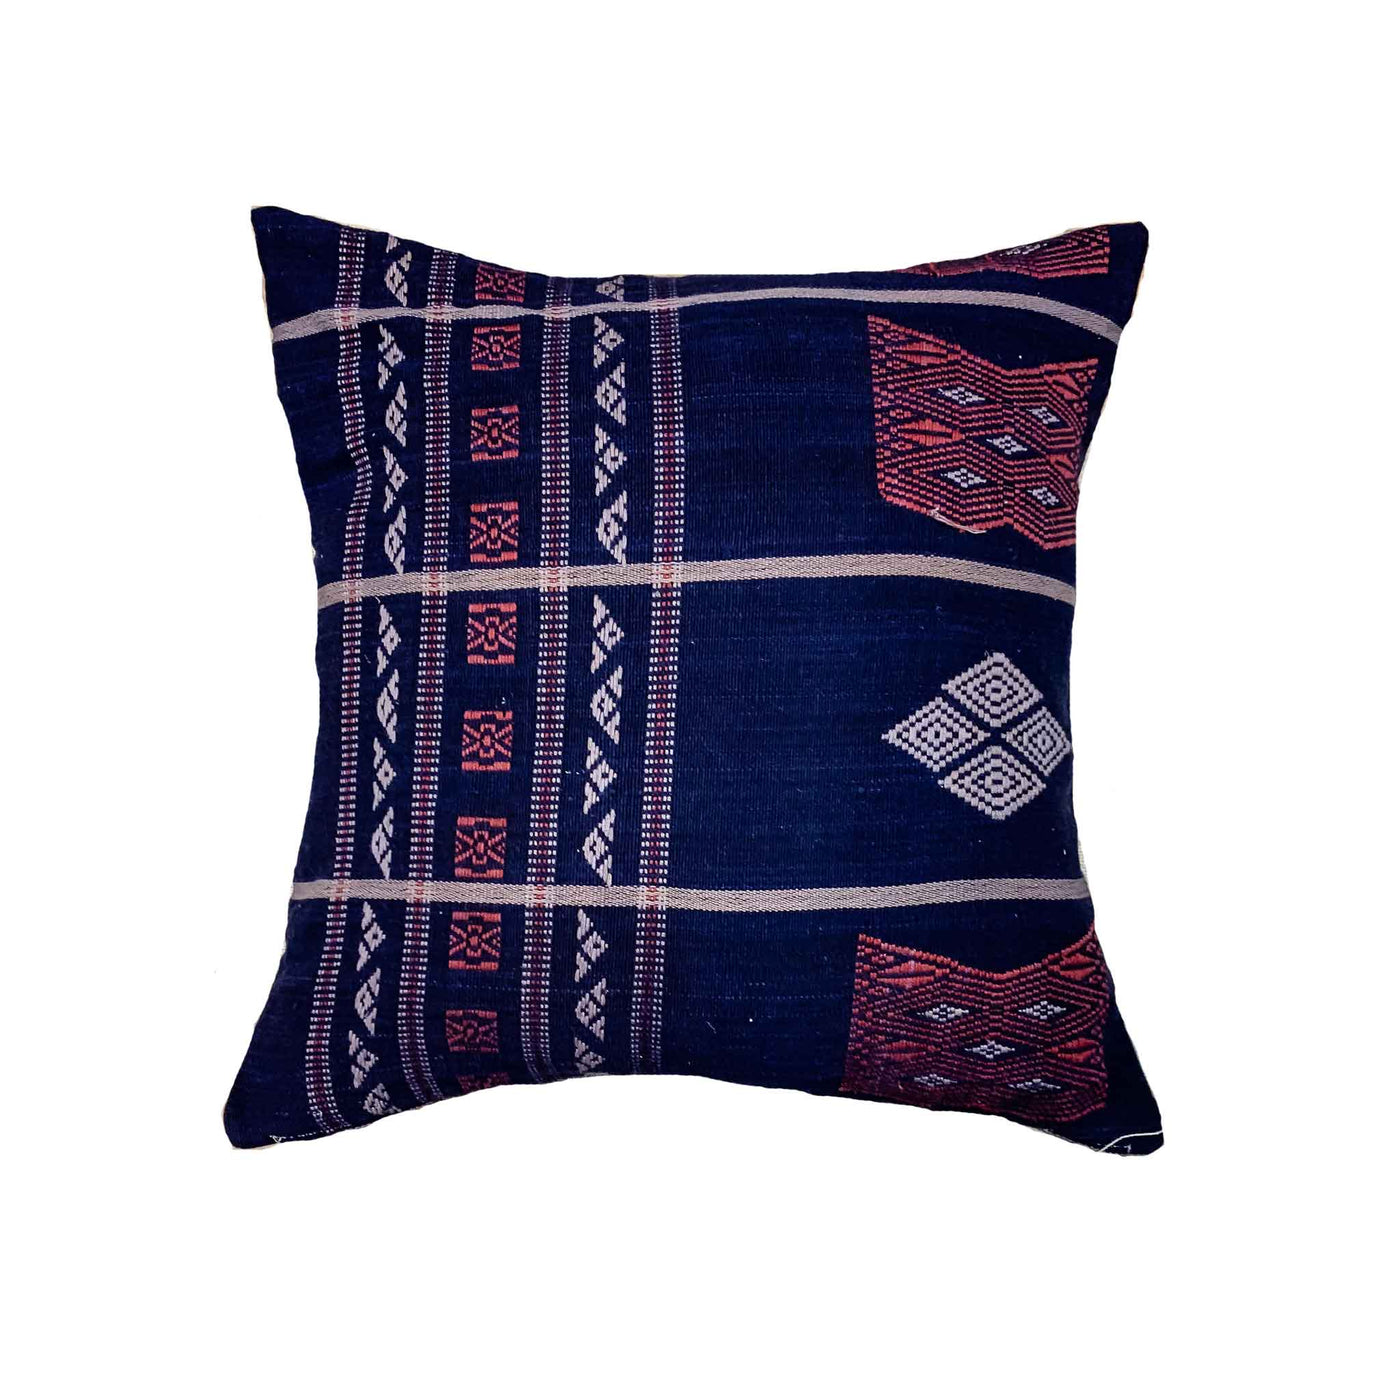 SALE! Handwoven tribal pillow collection - Studio Pillows